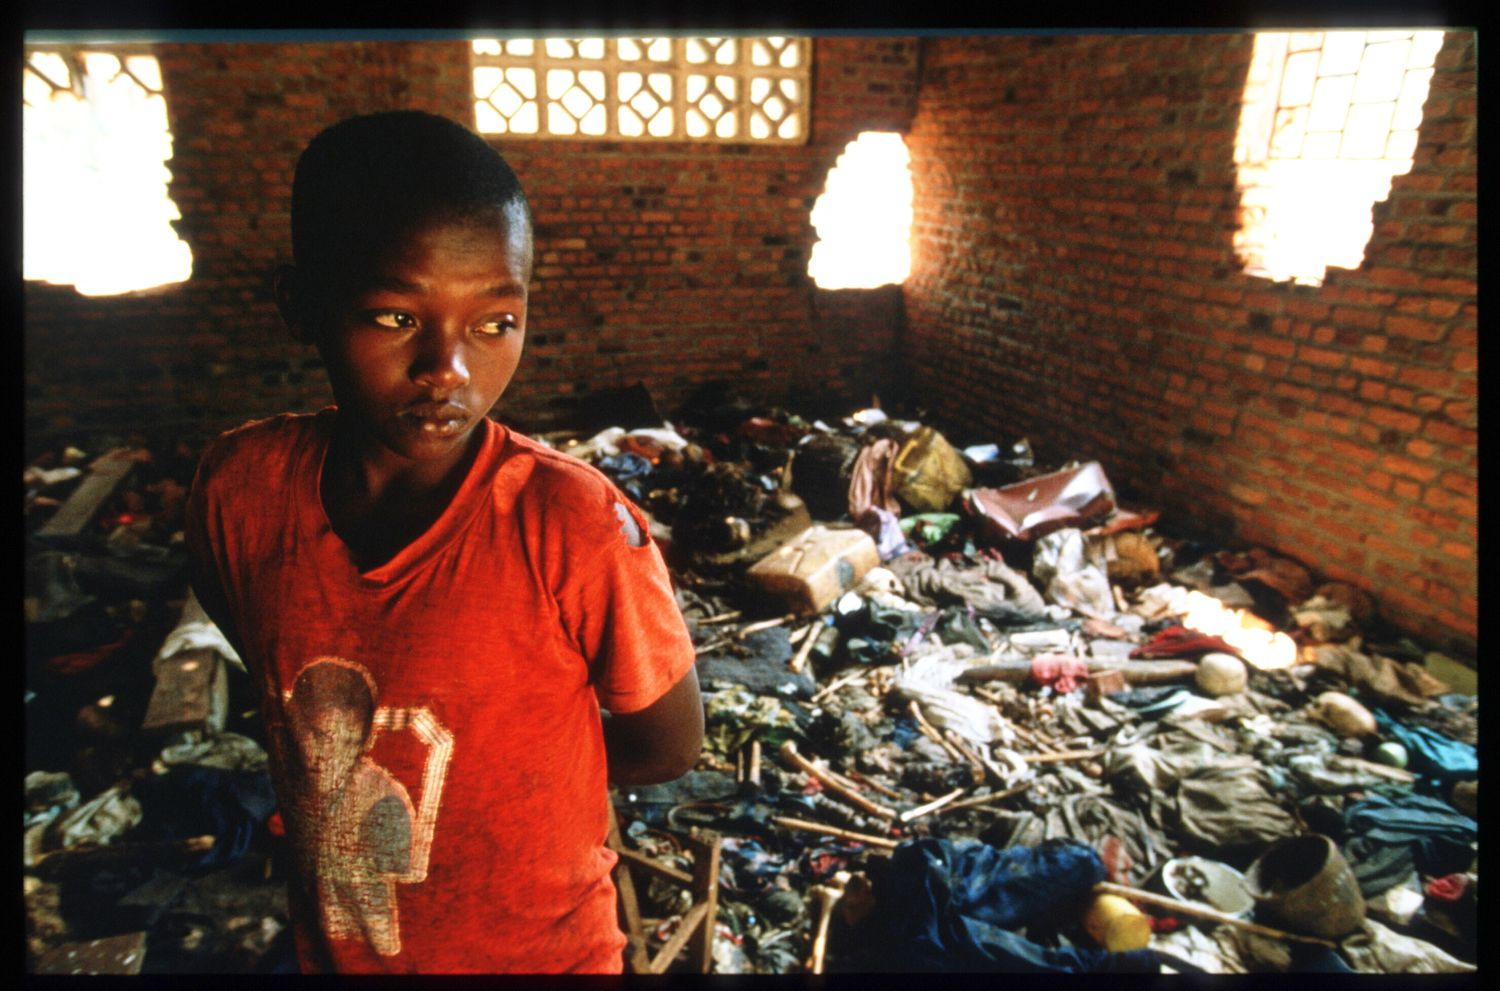 197284 05: A local child stands amid the debris September 16, 1994 at a church in Ntarama, Rwanda. The bodies of four hundred Tutsis murdered by Hutu militiamen were found in the church at Ntarama by an Australian-led United Nations team. (Photo by Scott Peterson/Liaison)